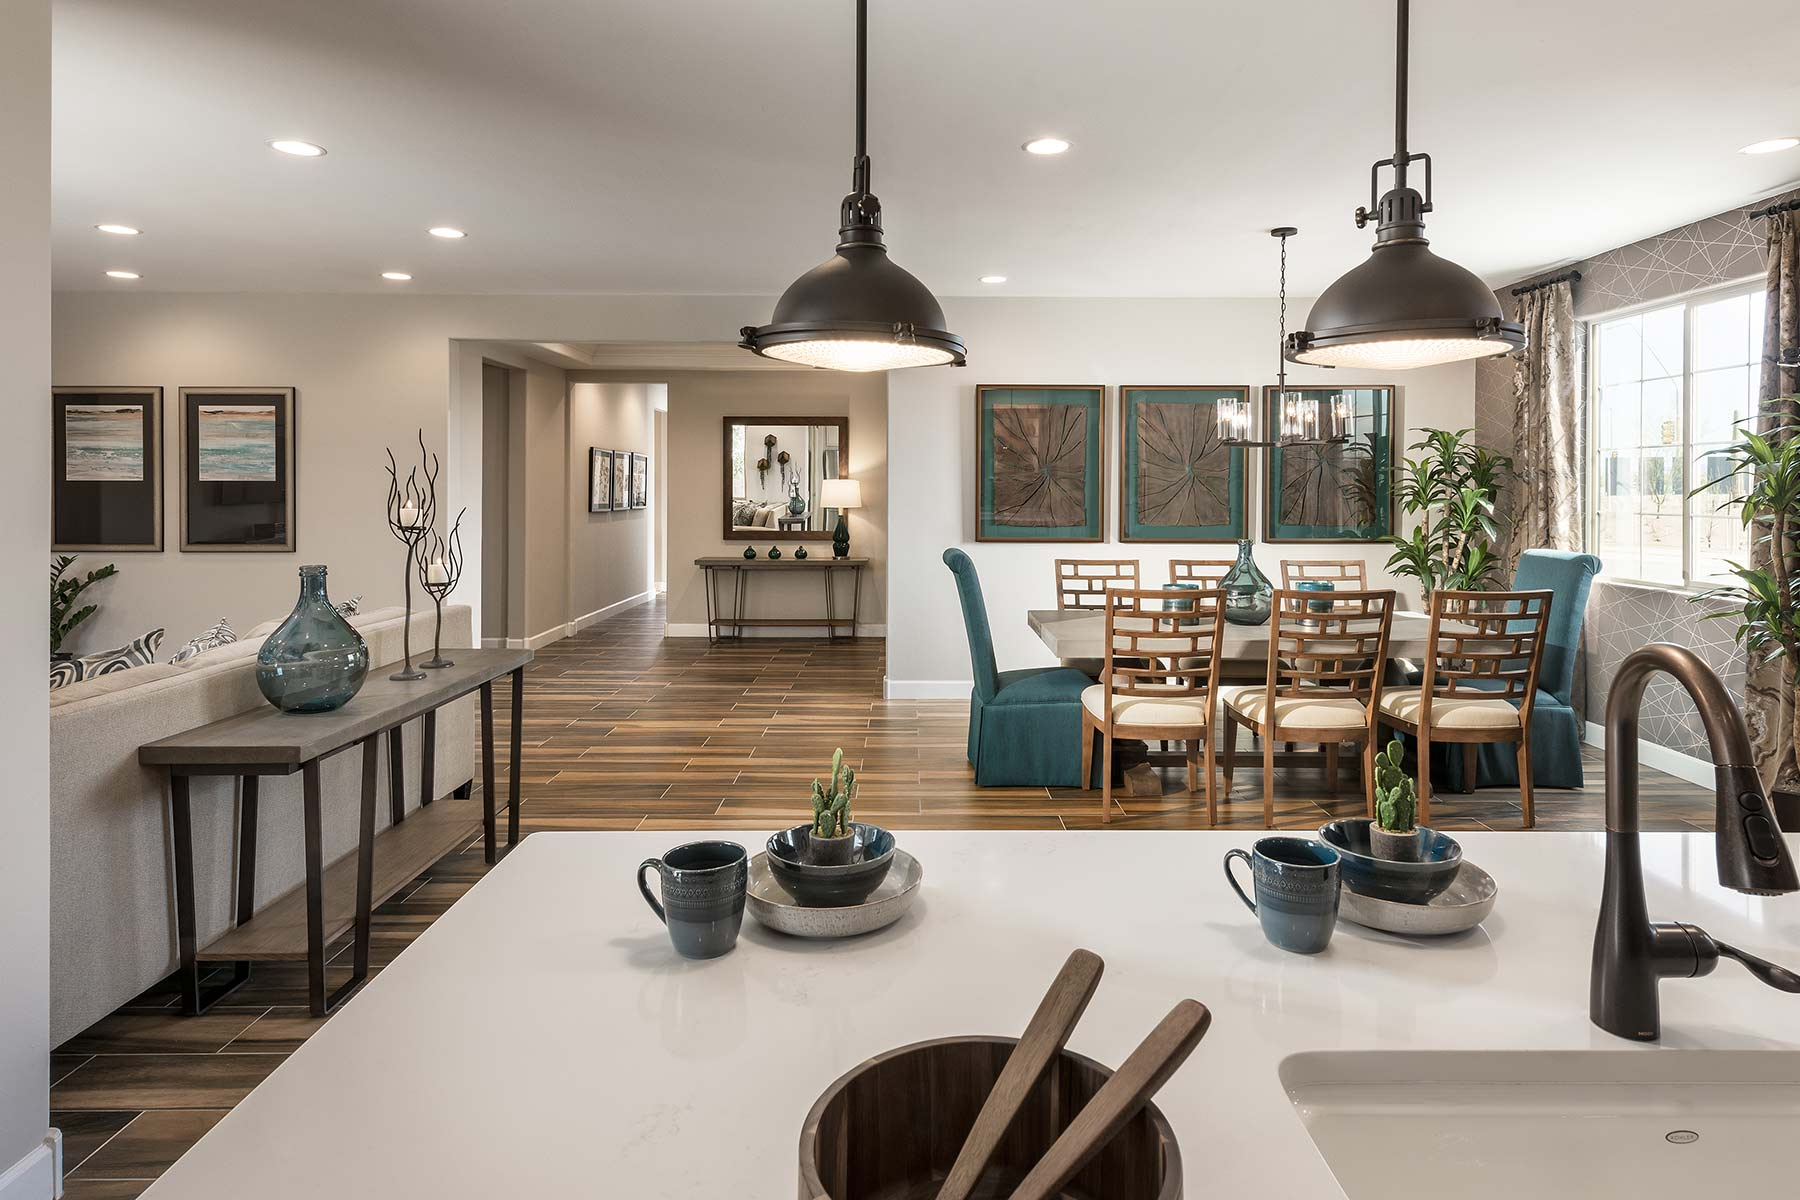 Ocotillo Plan Kitchen at Saguaro Trails in Tucson Arizona by Mattamy Homes